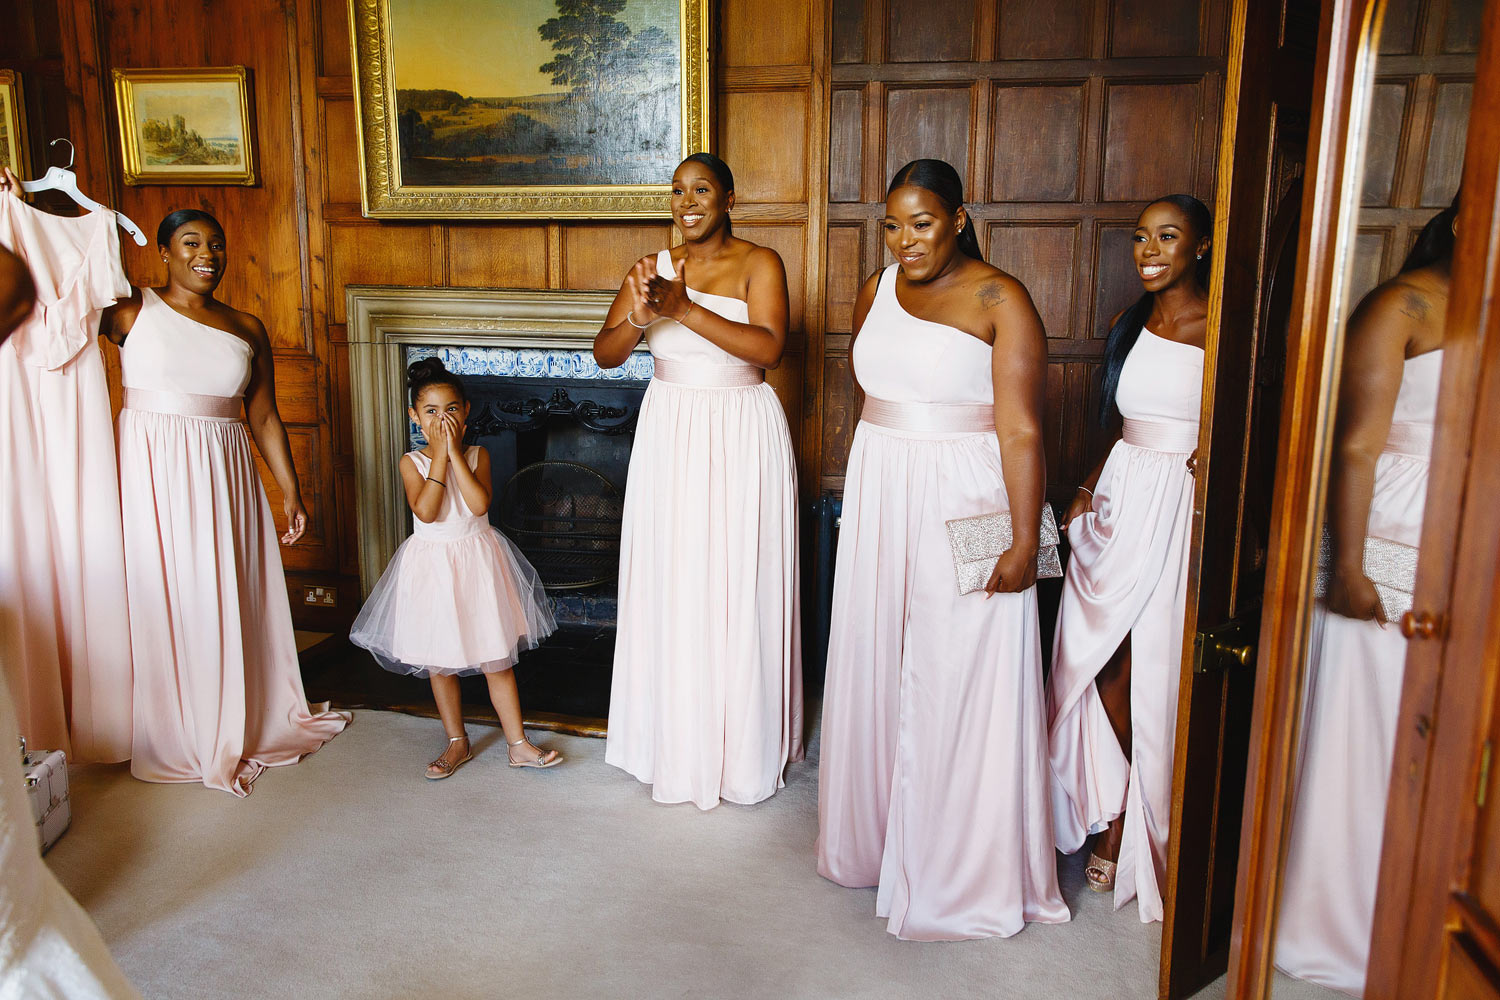 Bridesmaids see the bride in her dress for the first time at her Elmore Court wedding in The Cotswolds.